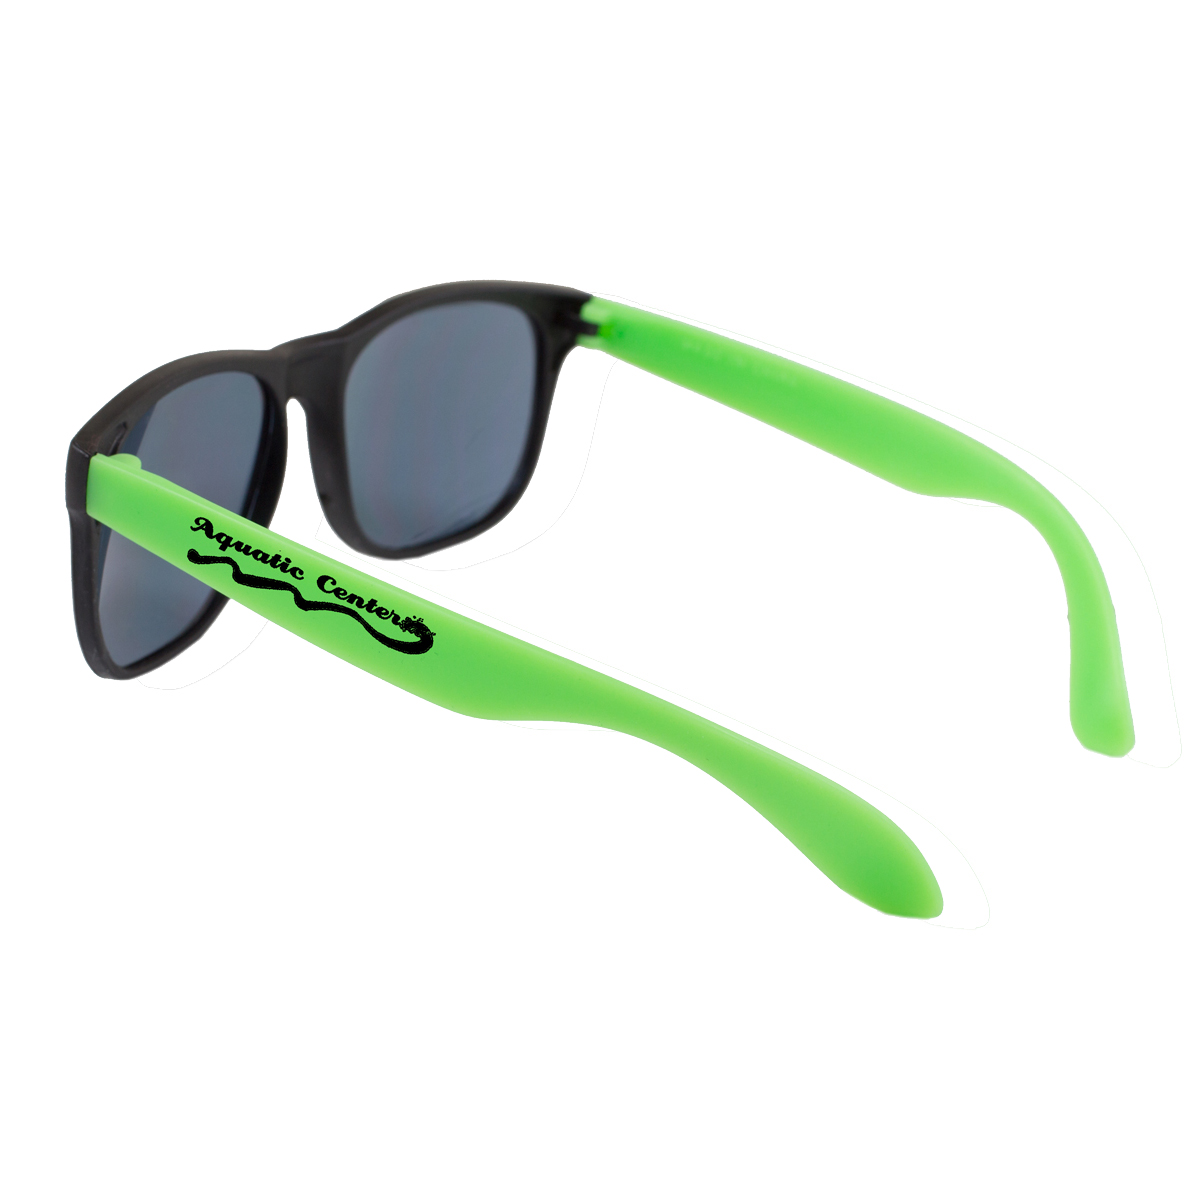 Newport Sunglasses  psg101 custom ray style sunglasses includes 1 color logo